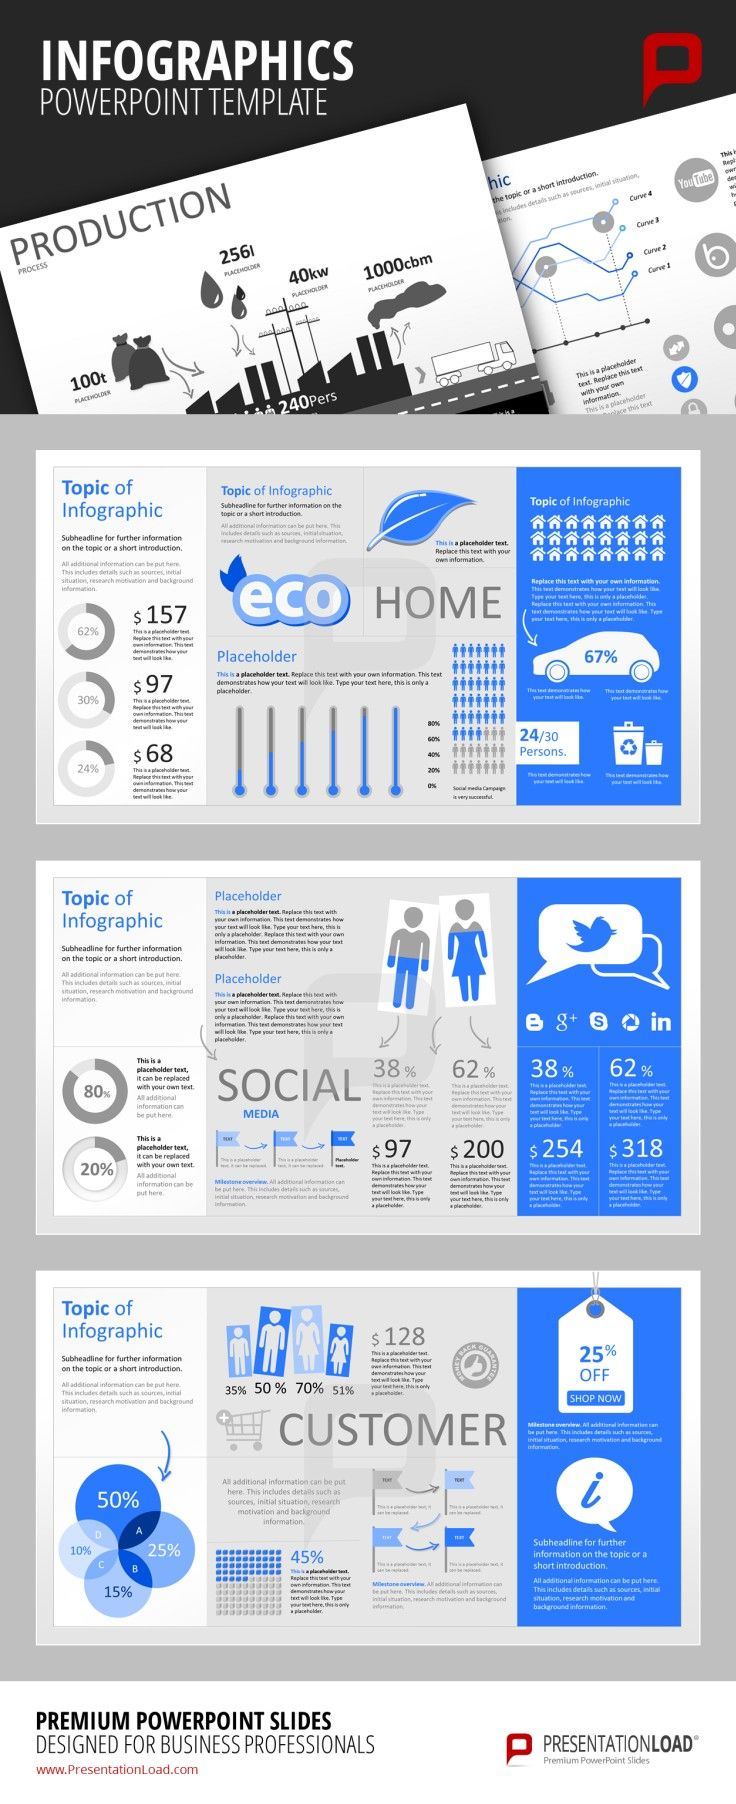 Infographic PowerPoint Templates Create marketing related infographics regarding the impact of Social Media Marketing strategies or to visualize customer behavior and related data. #presentationload www.presentationl...